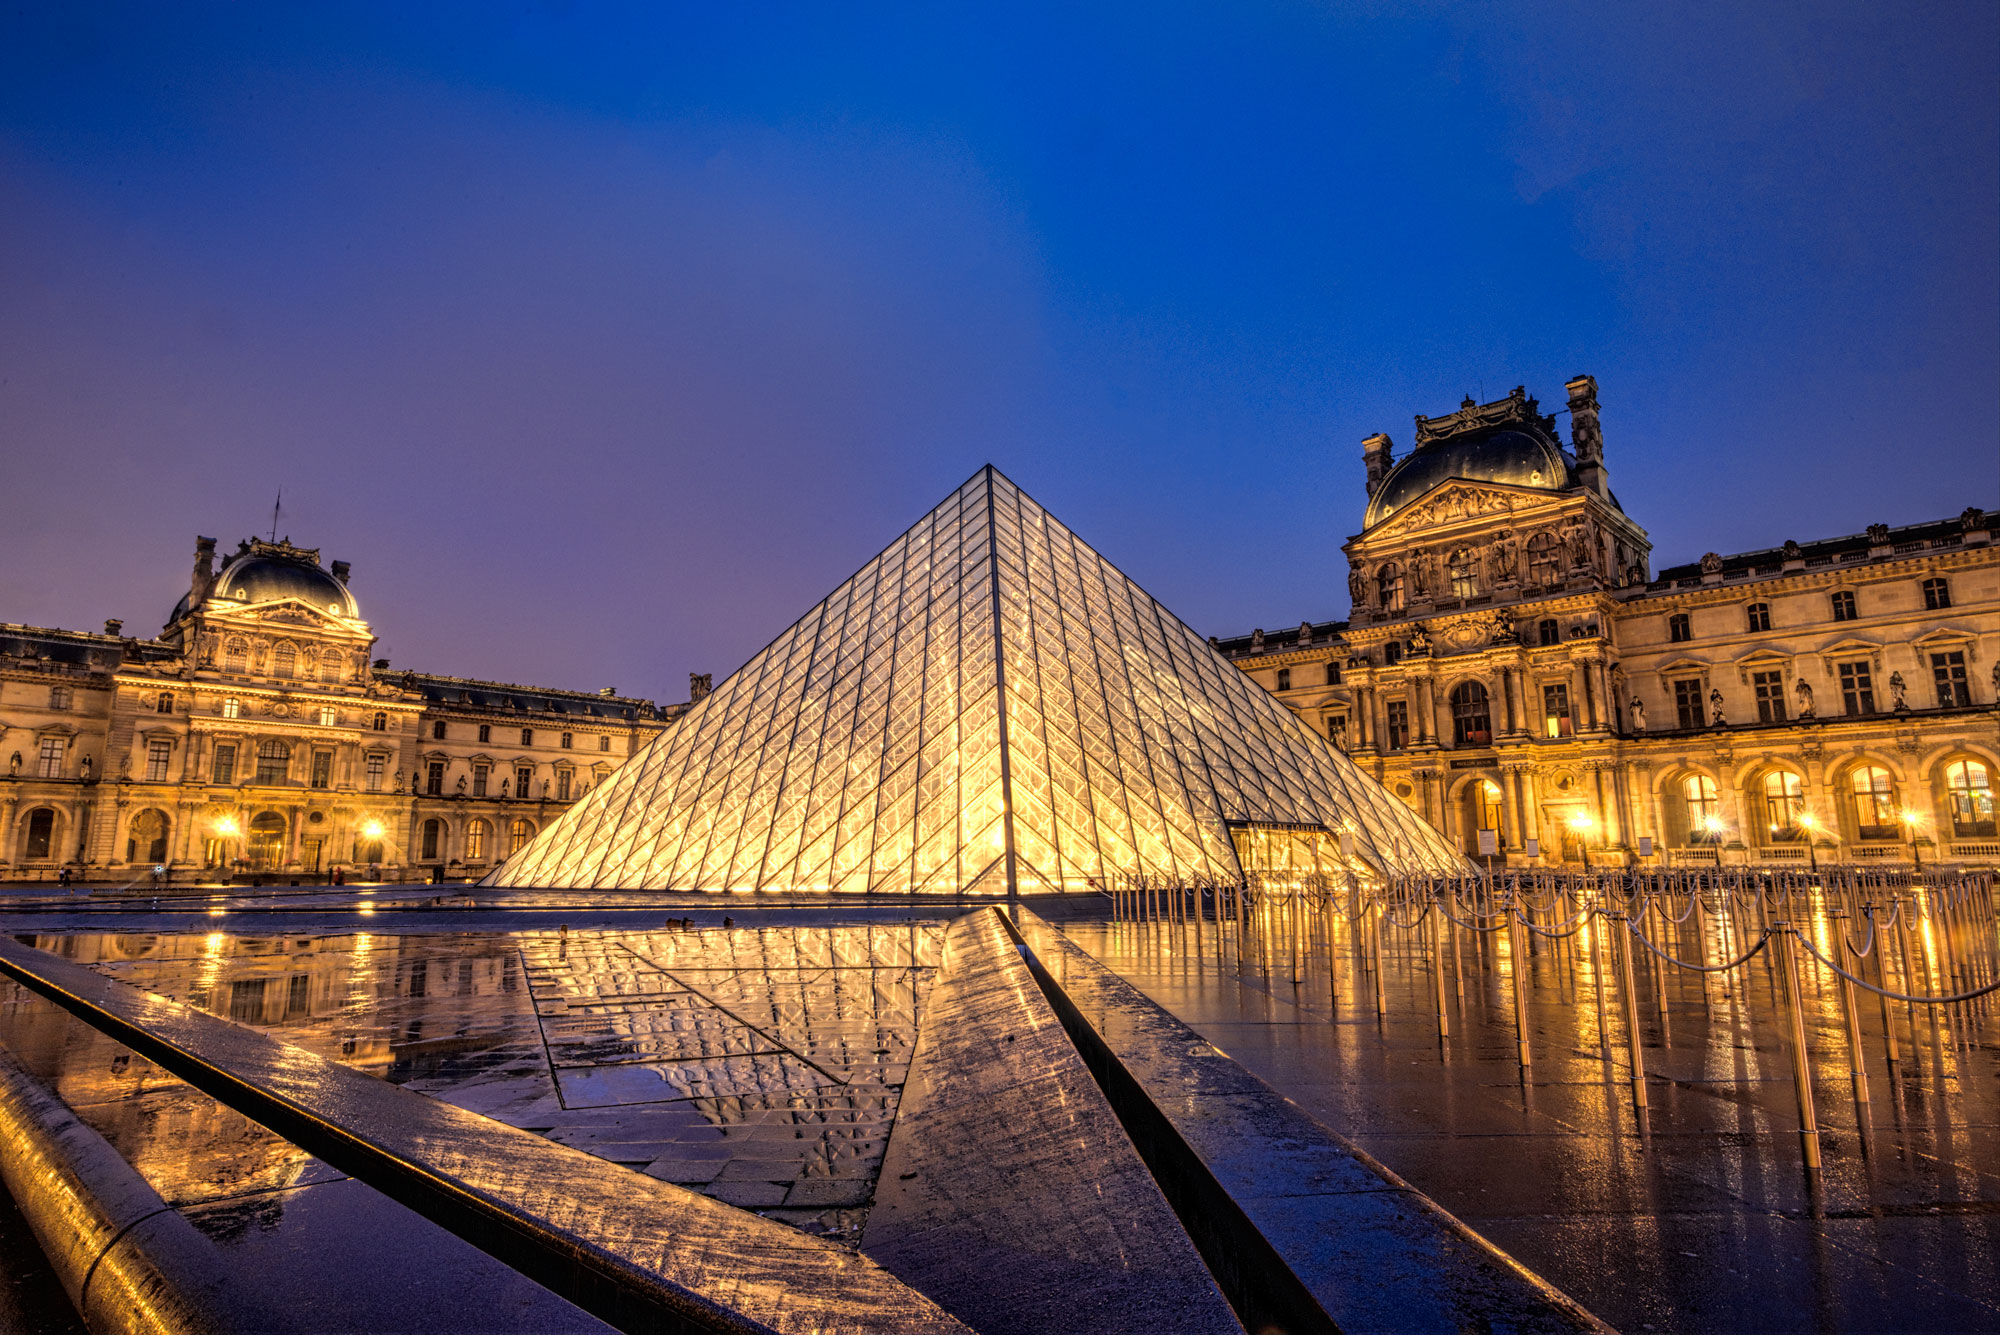 Night view of Louvre pyramid